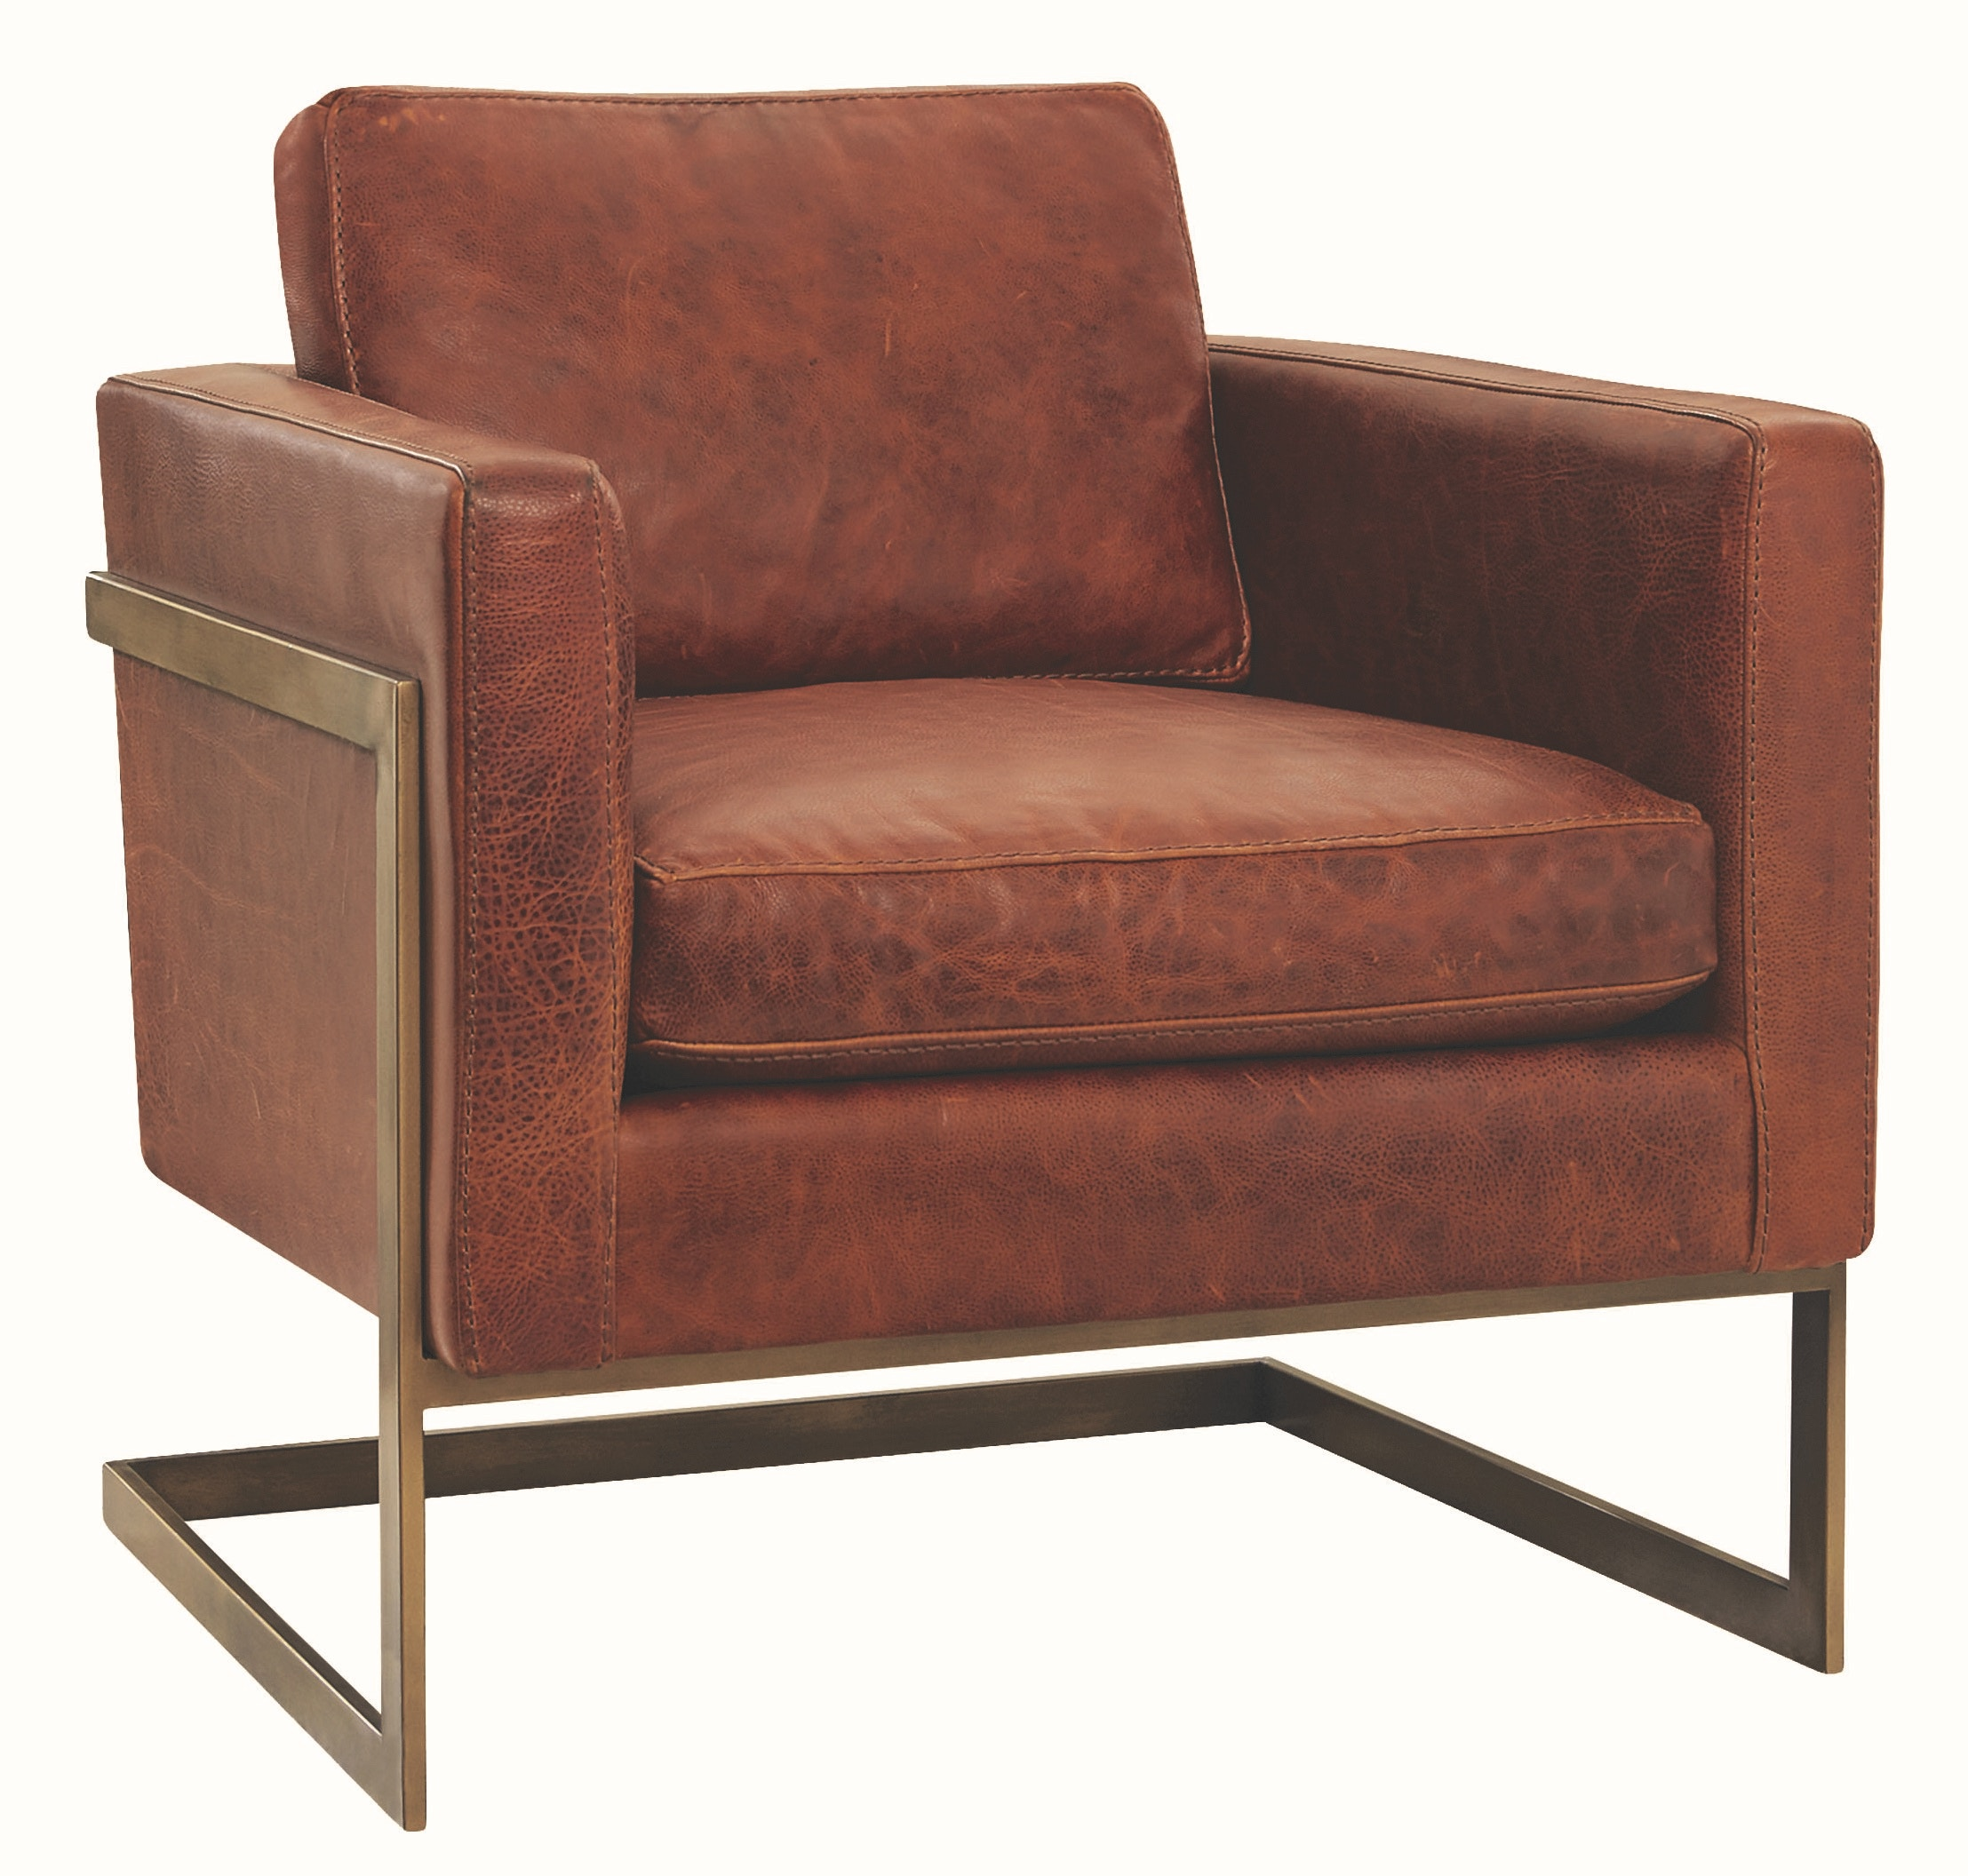 Lee Industries Leather Chair L1858 01